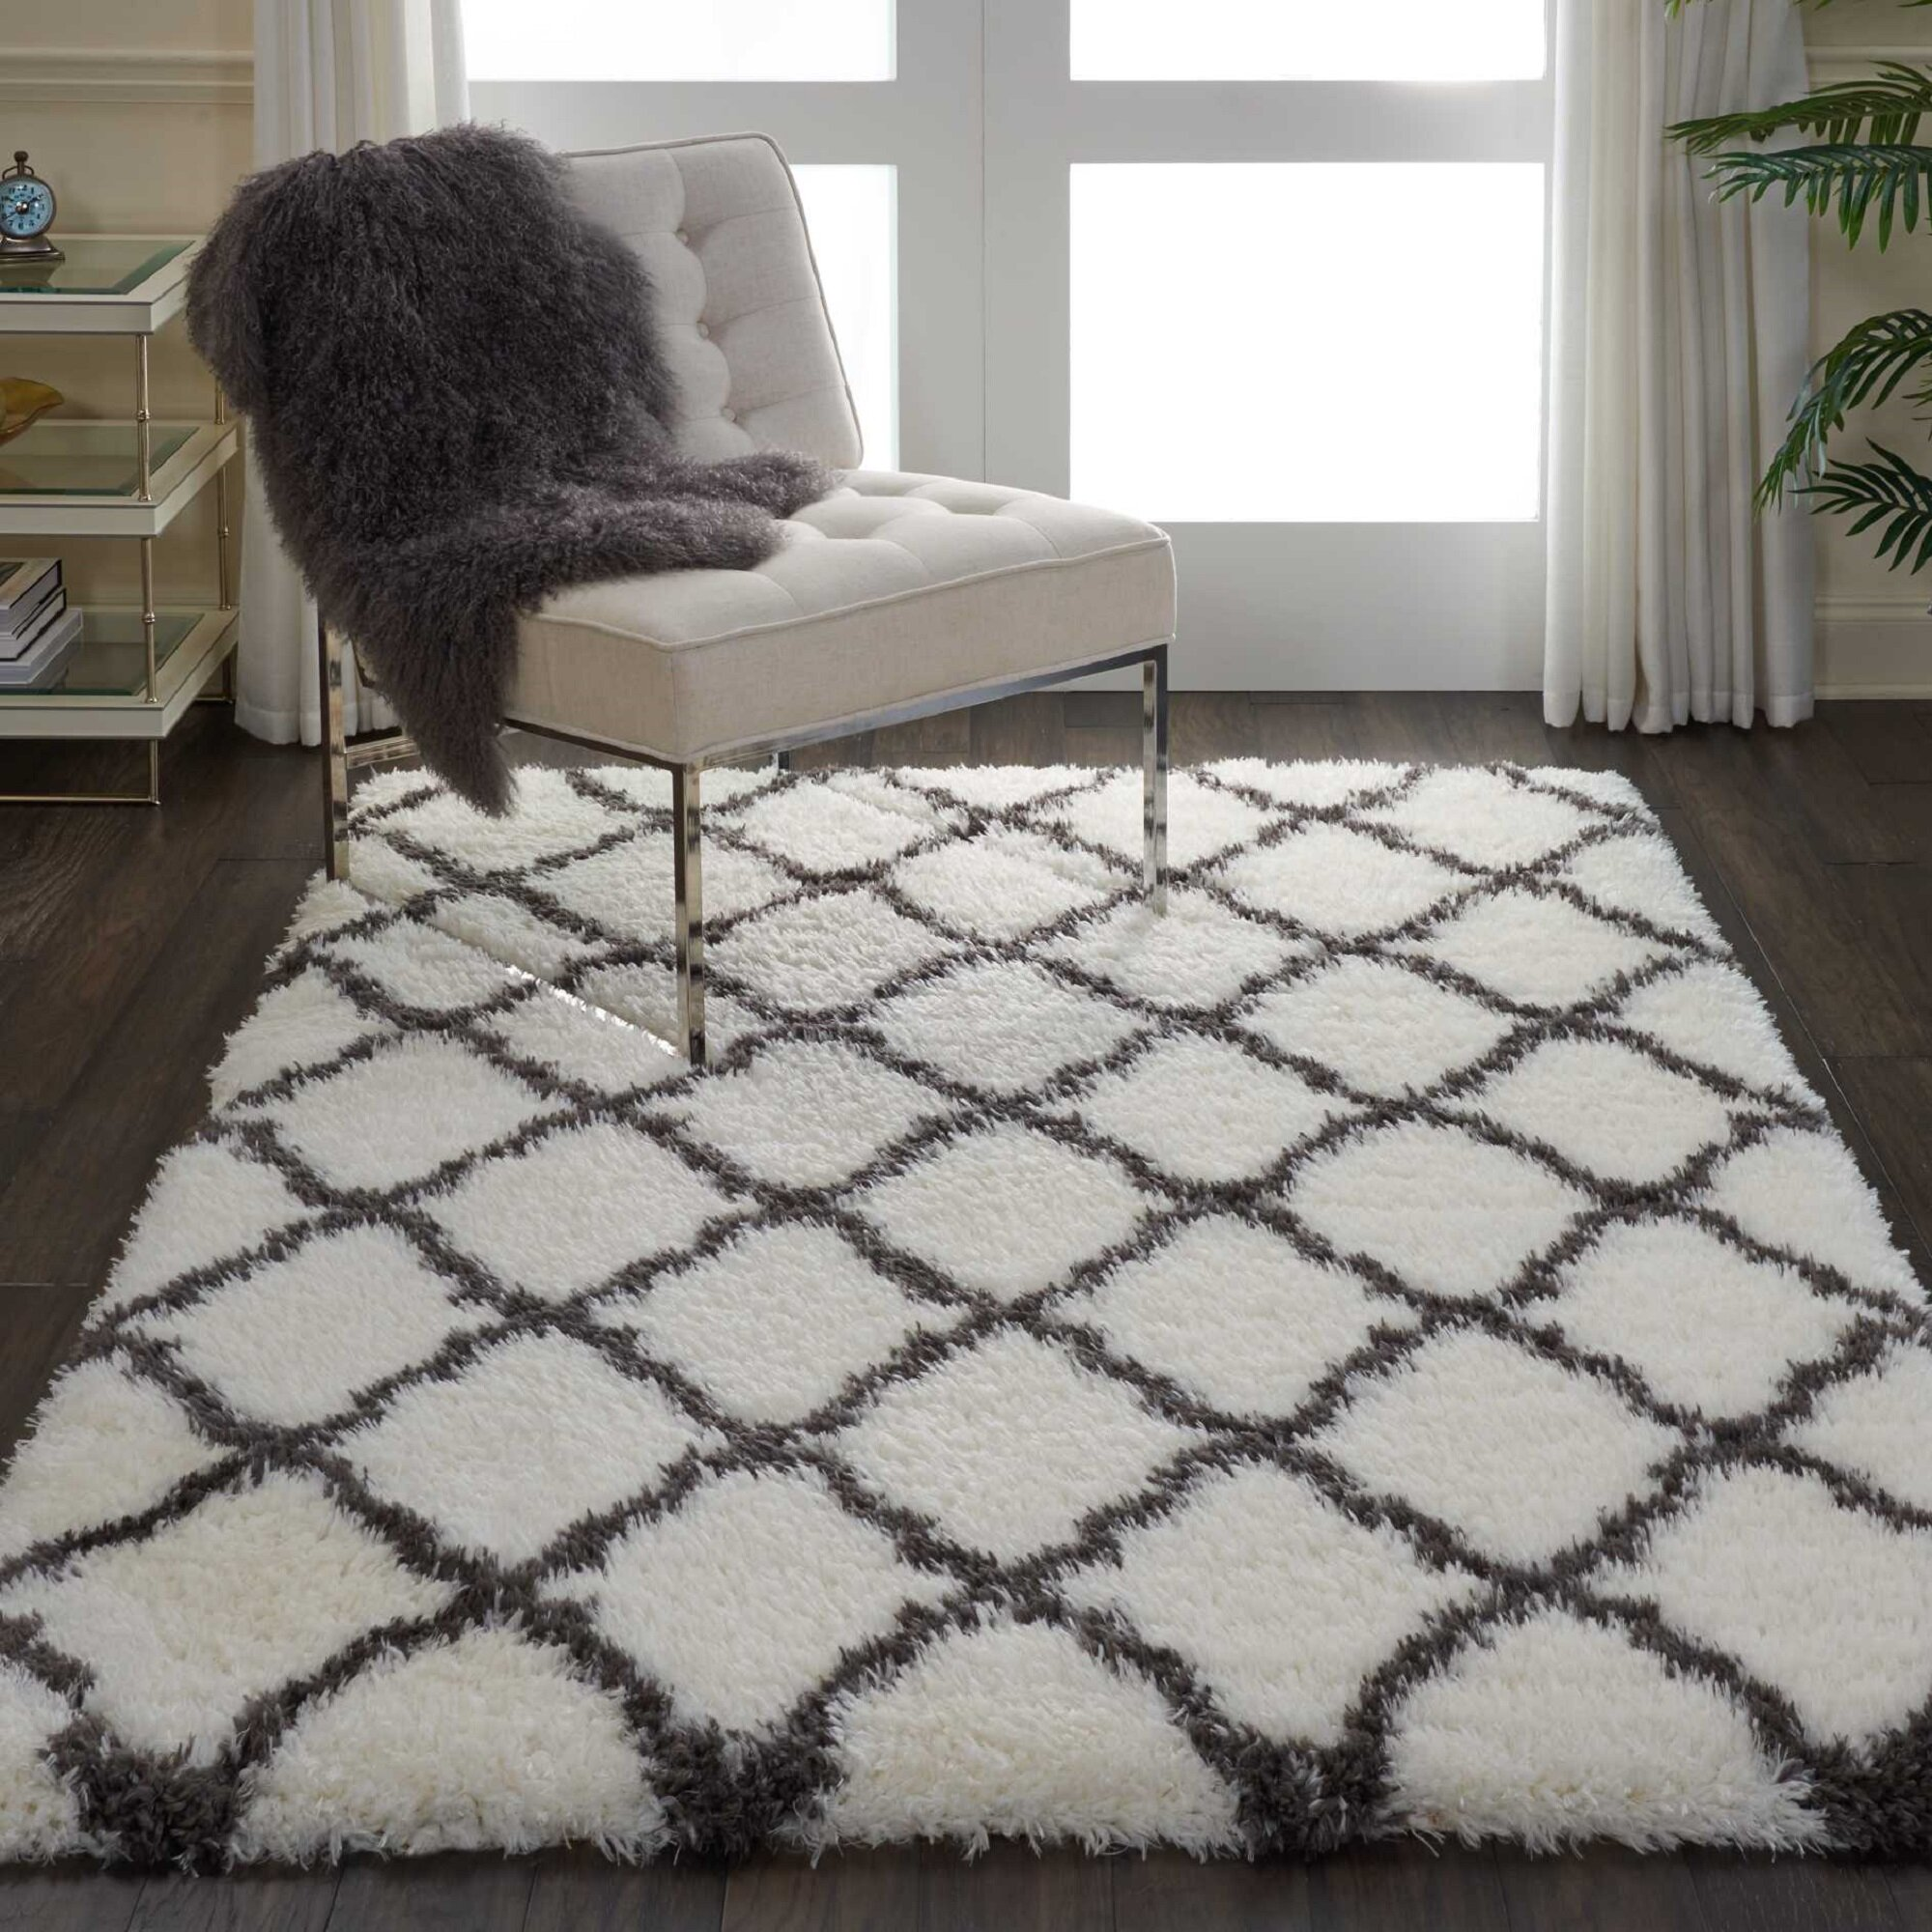 Soft /& Fluffy Ivory Cream Moroccan Shaggy Trellis Rug Thick 5cm High Pile Carpet